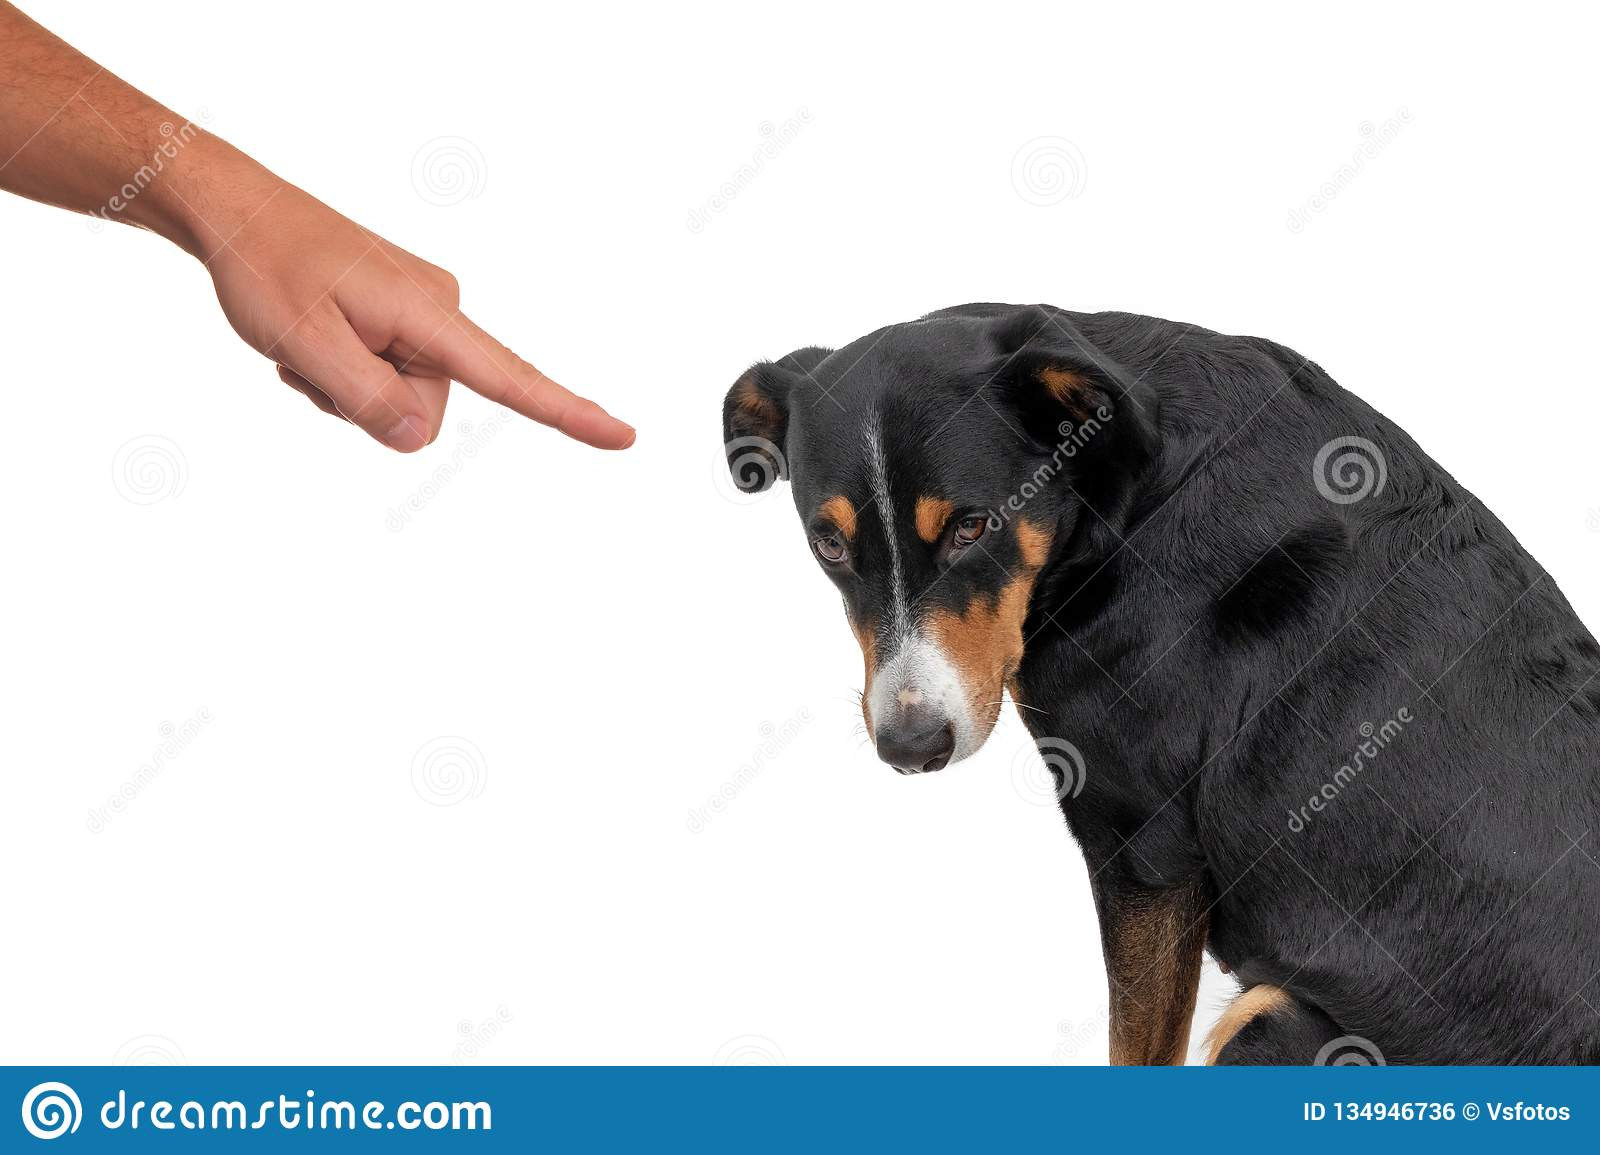 Bad dog, pushing by owner with finger pointing at him, isolated on white background